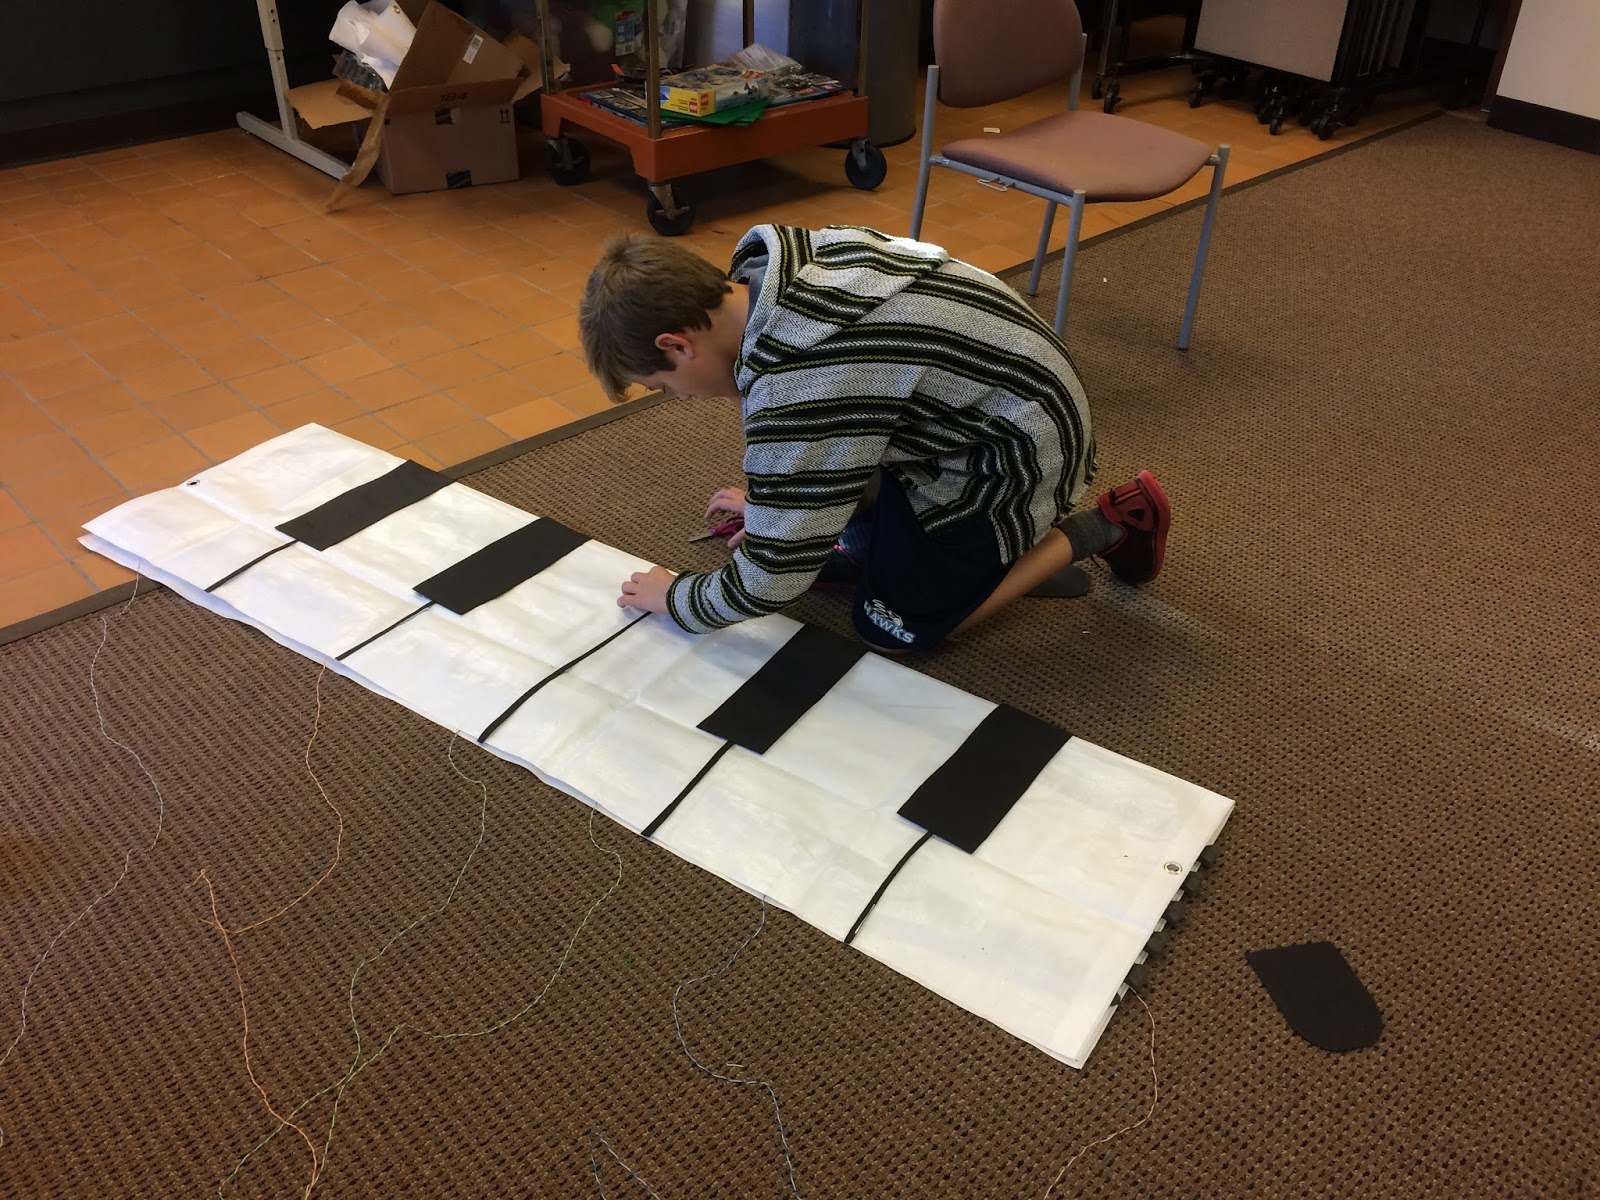 Library As Makerspace Makey Makey Floor Piano